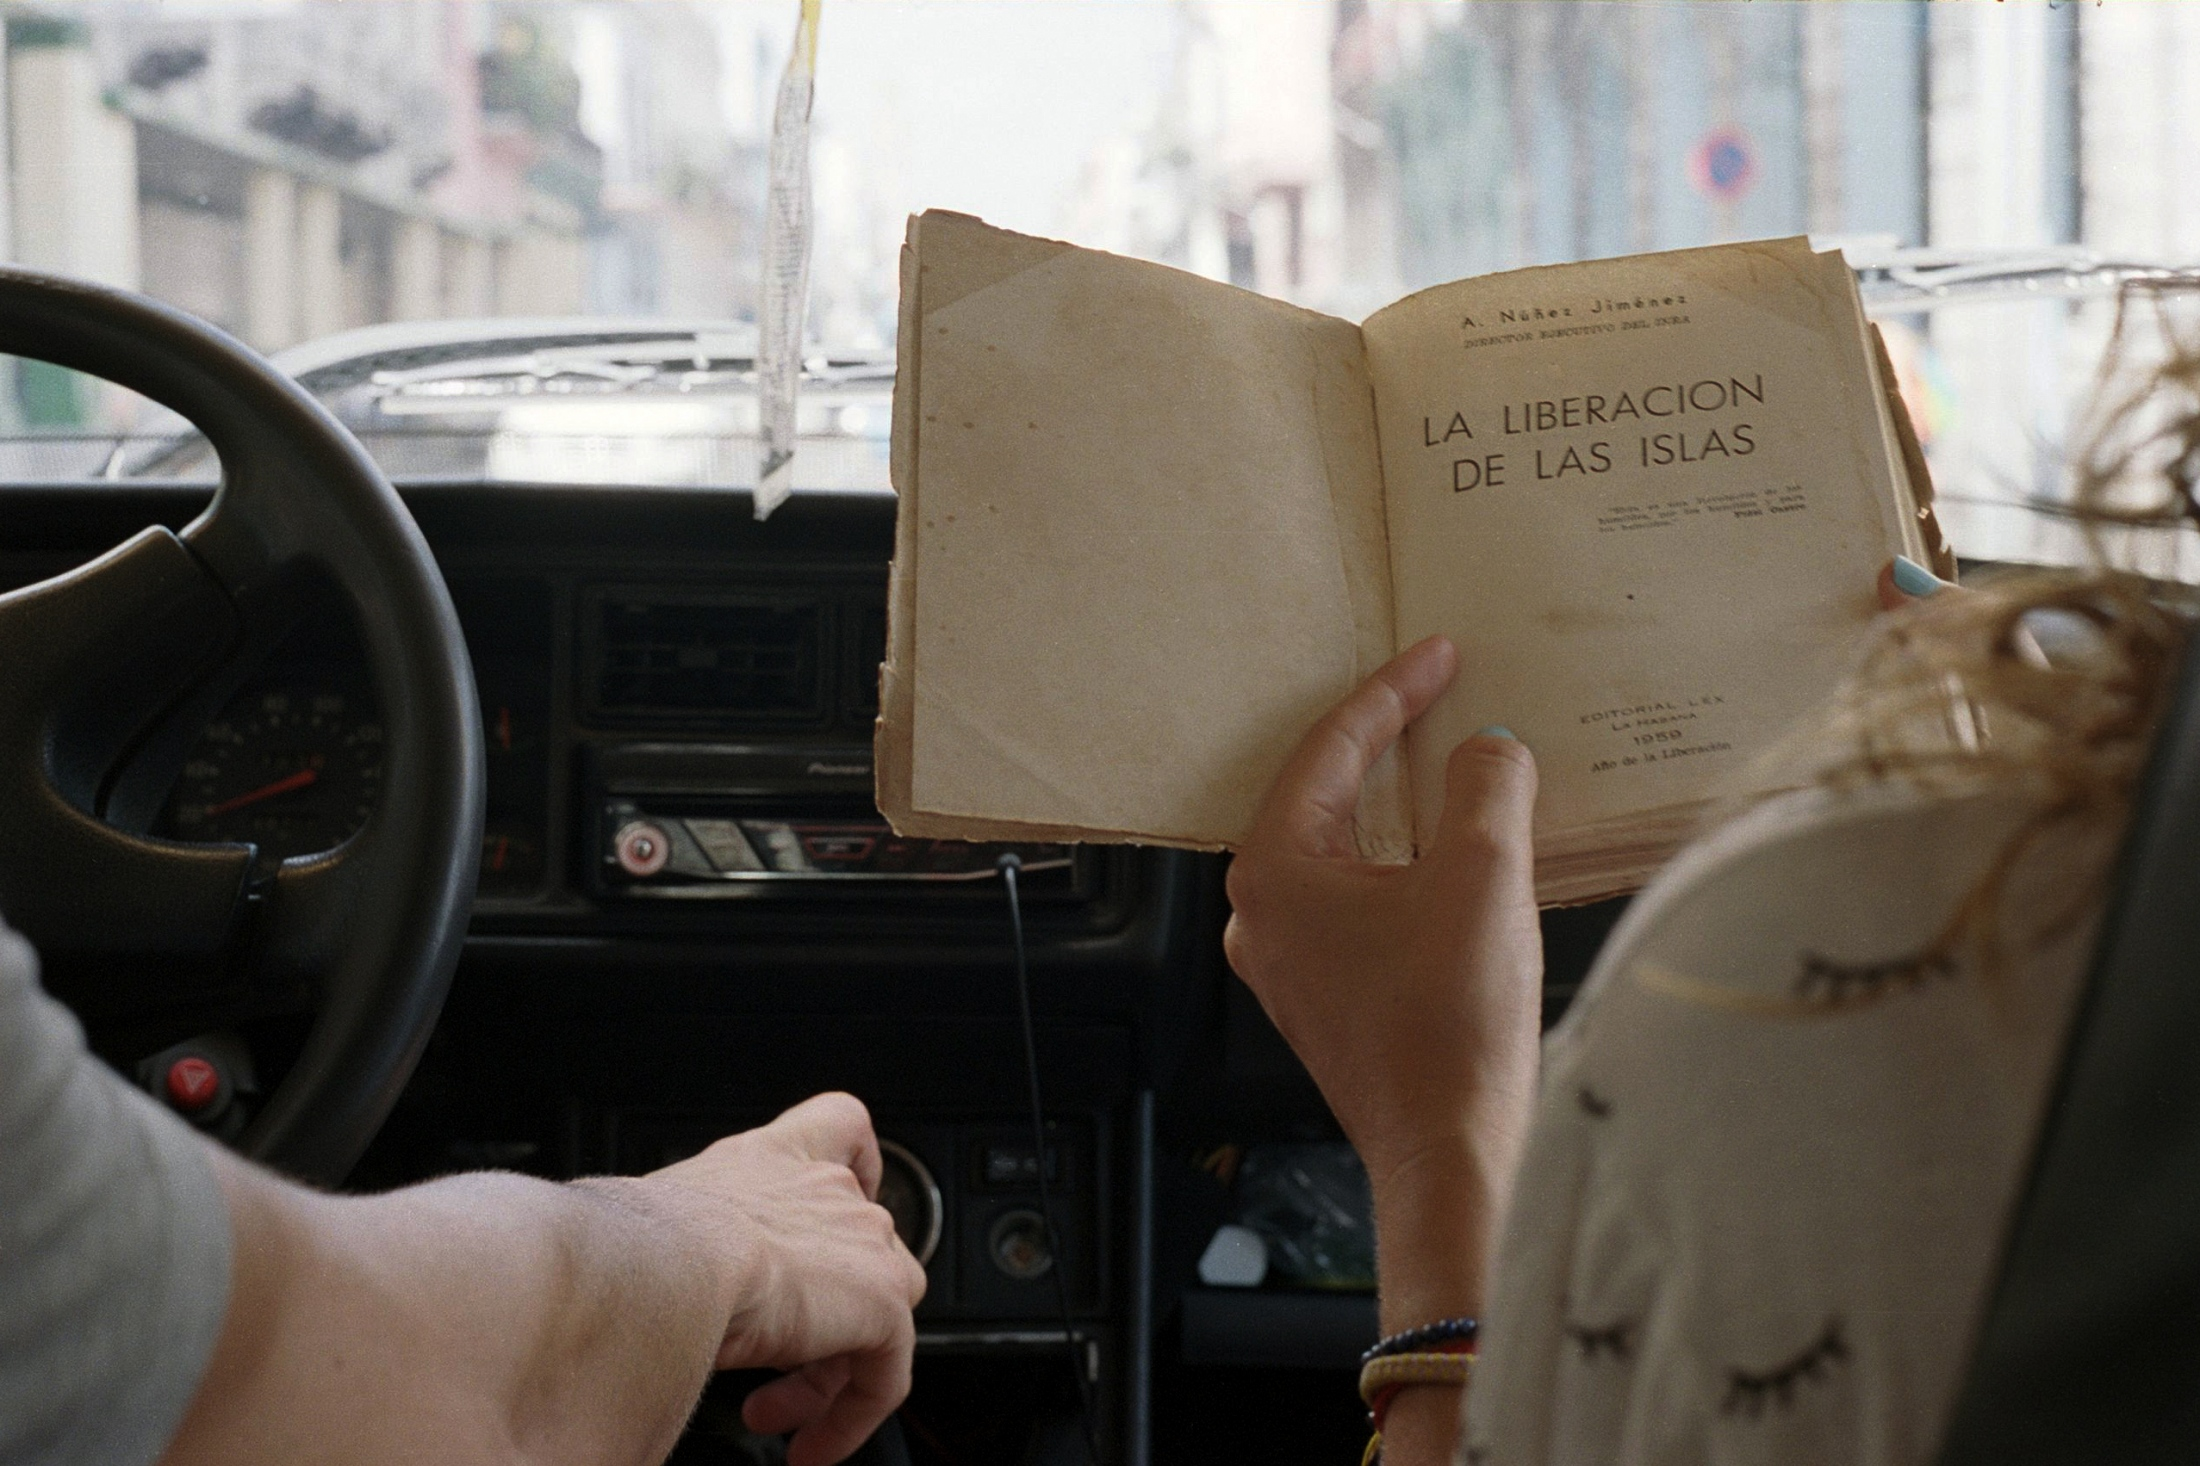 Lisette looking through the book I just bought, Havana, Cuba